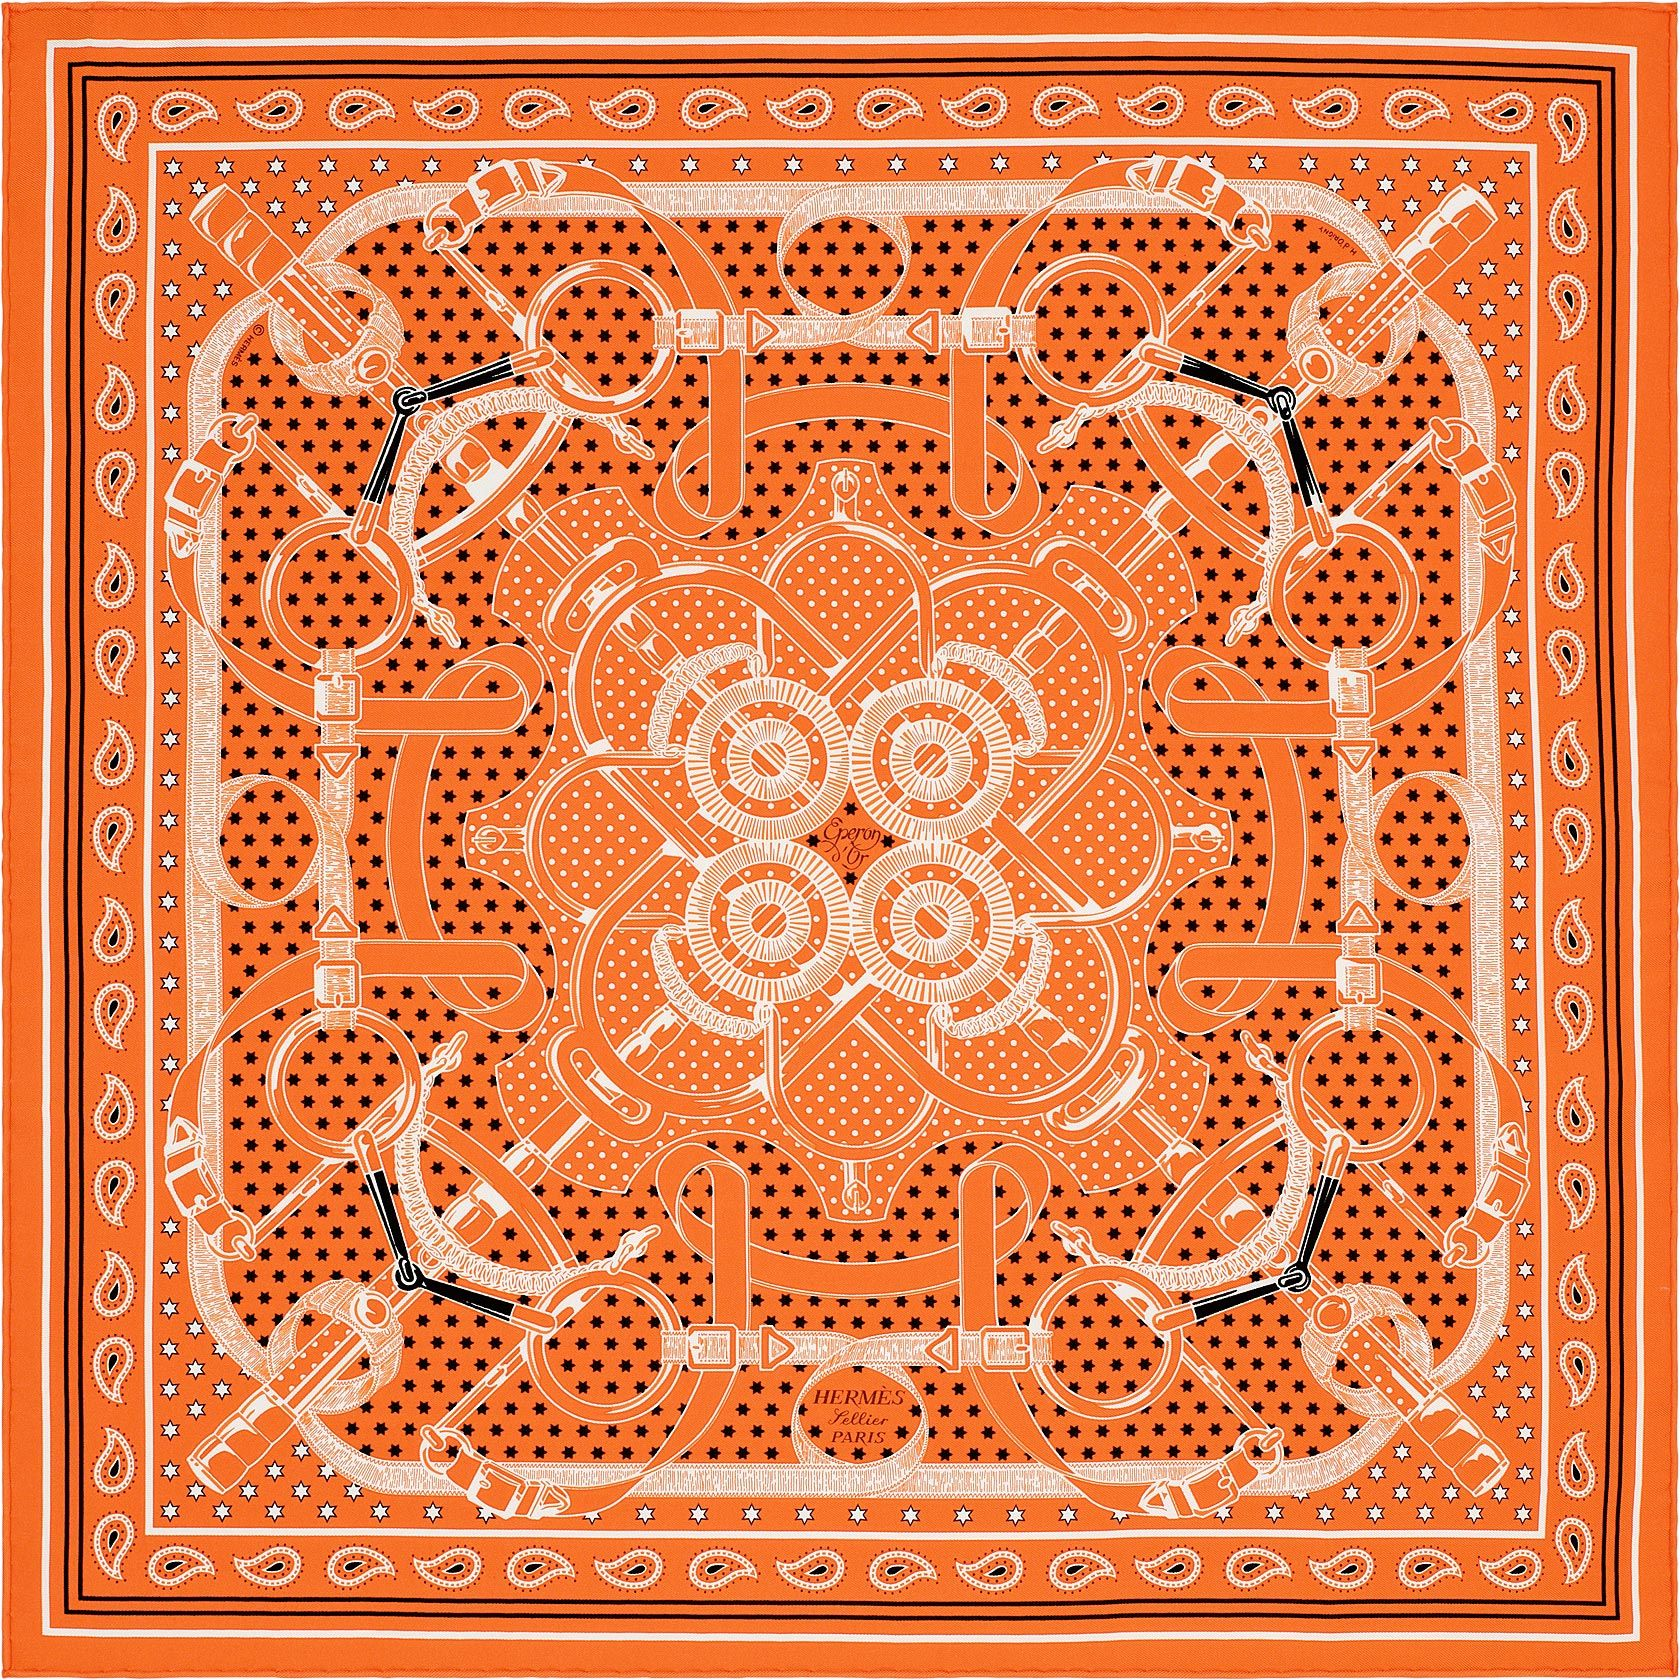 cd539b84f458 Bandana 55 x 55 cm Hermès   Eperon d Or   Mode   Carré hermes ...